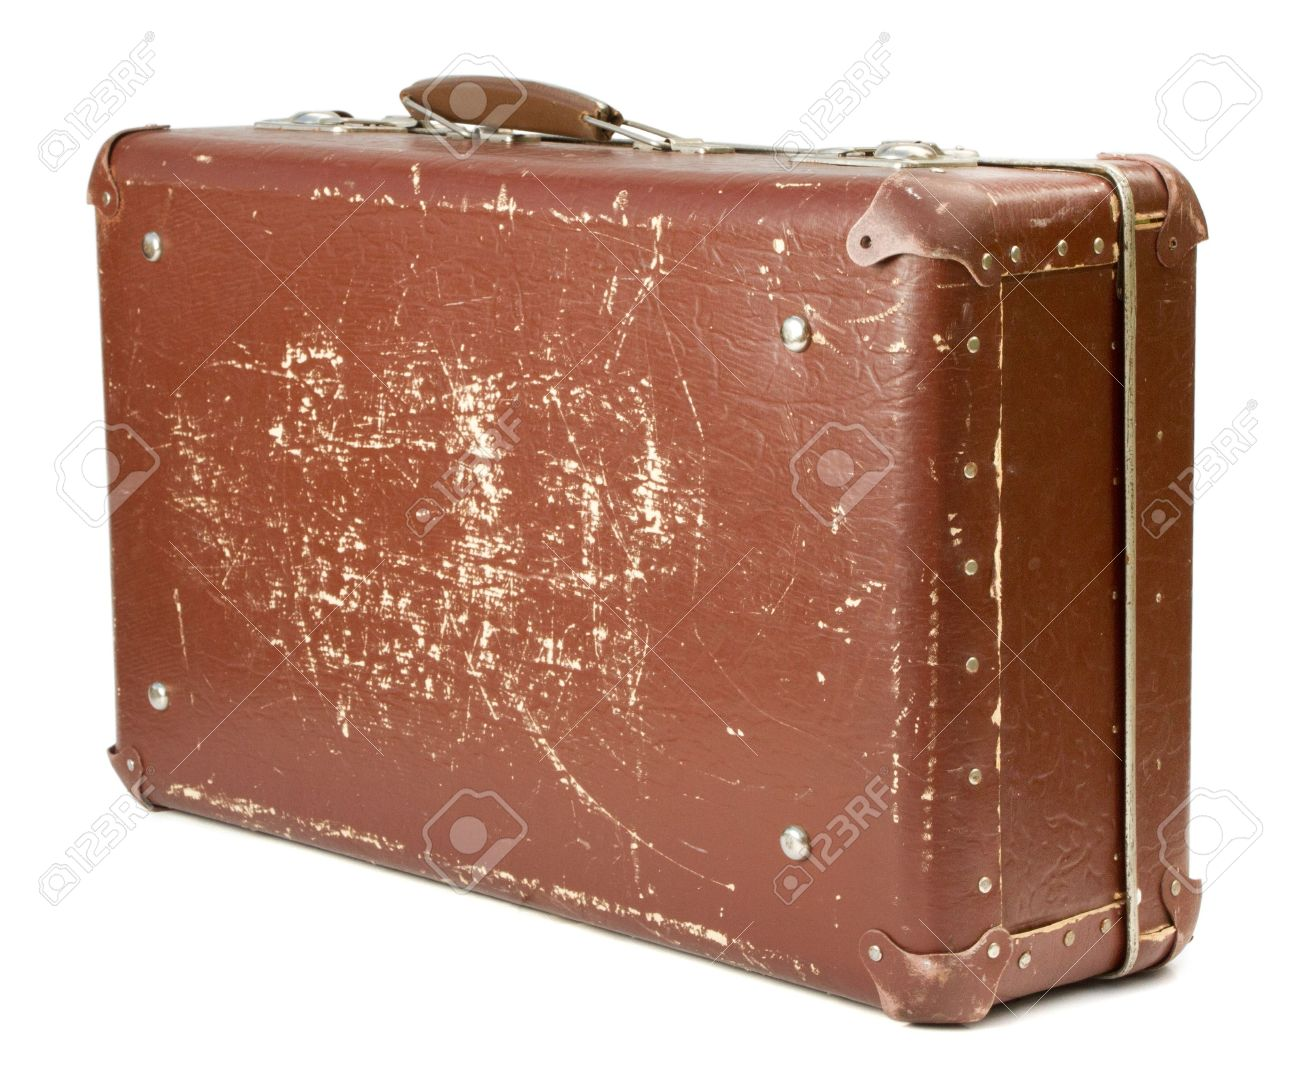 worn out old suitcase on white background stock photo picture and